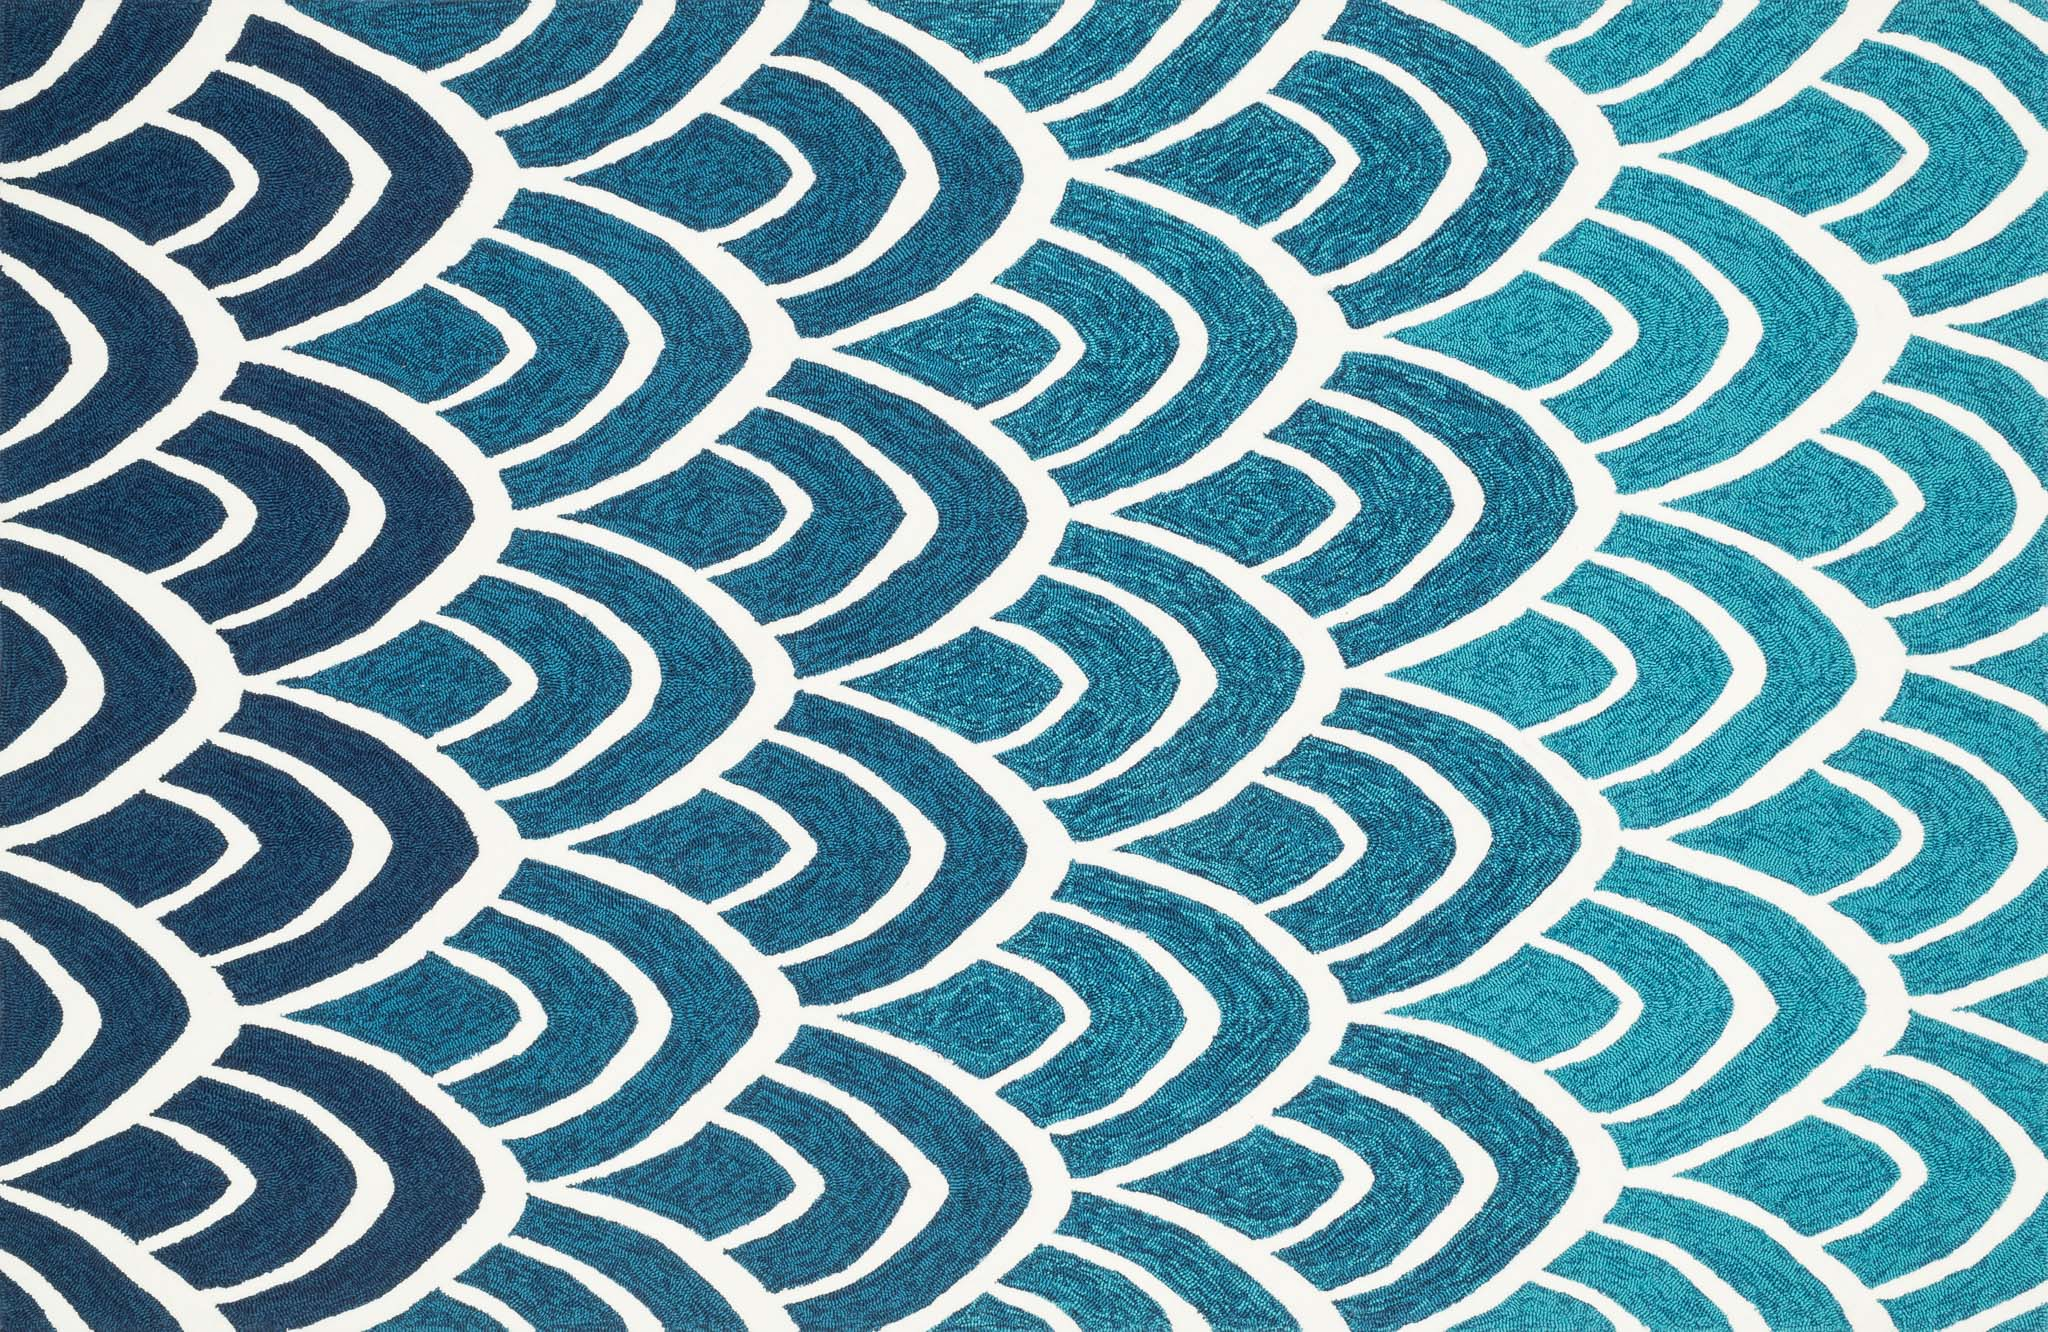 Loloi Venice Beach VB-20 Blue Multi Rug